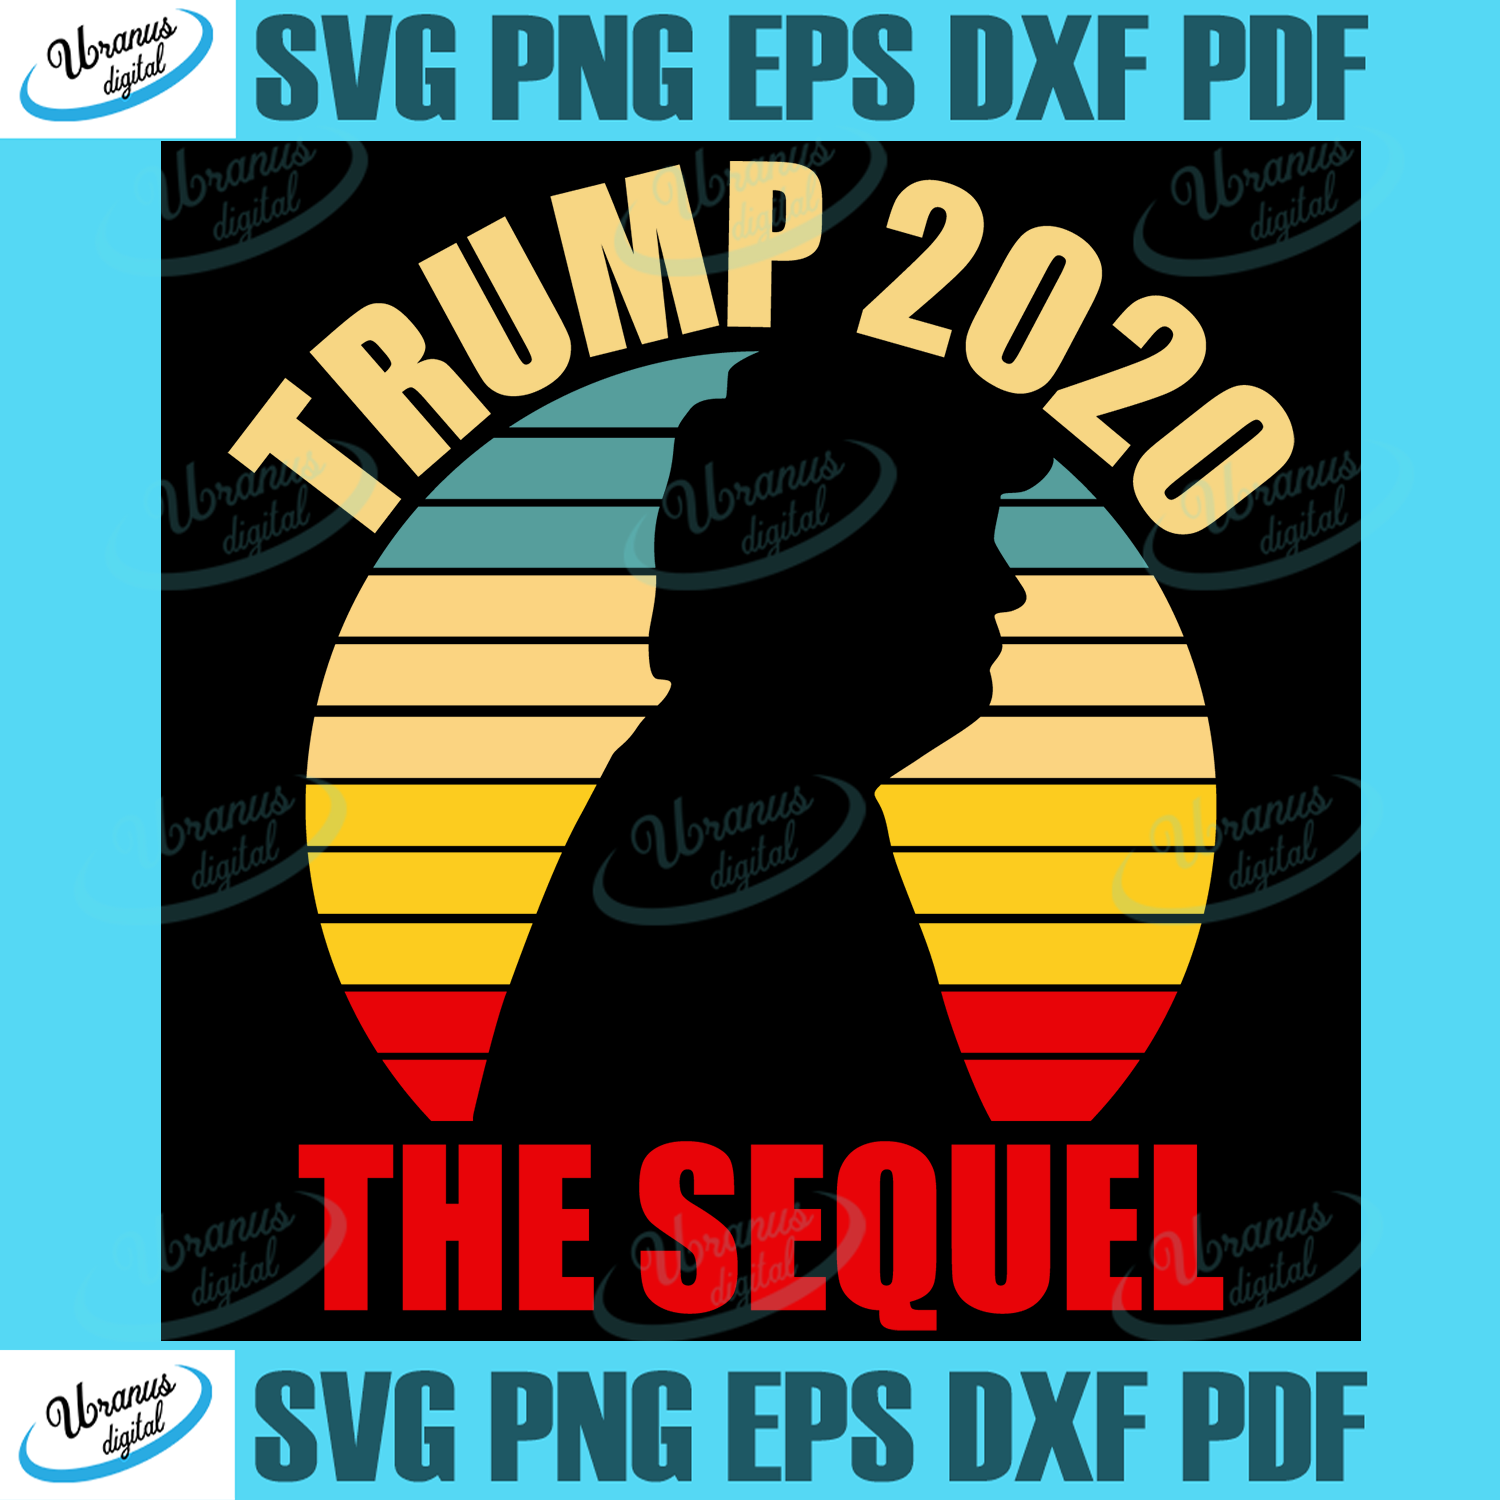 Trending Svg Svg Trump 2020 The Sequel Svg Trump 2020 Svg Make Liberals Cry Again Svg Trump 2020 Gift Donald Trump 2020 Svg Make America Svg Great Again Svg The Sequel Svg Svg Cricut Silhouette Svg